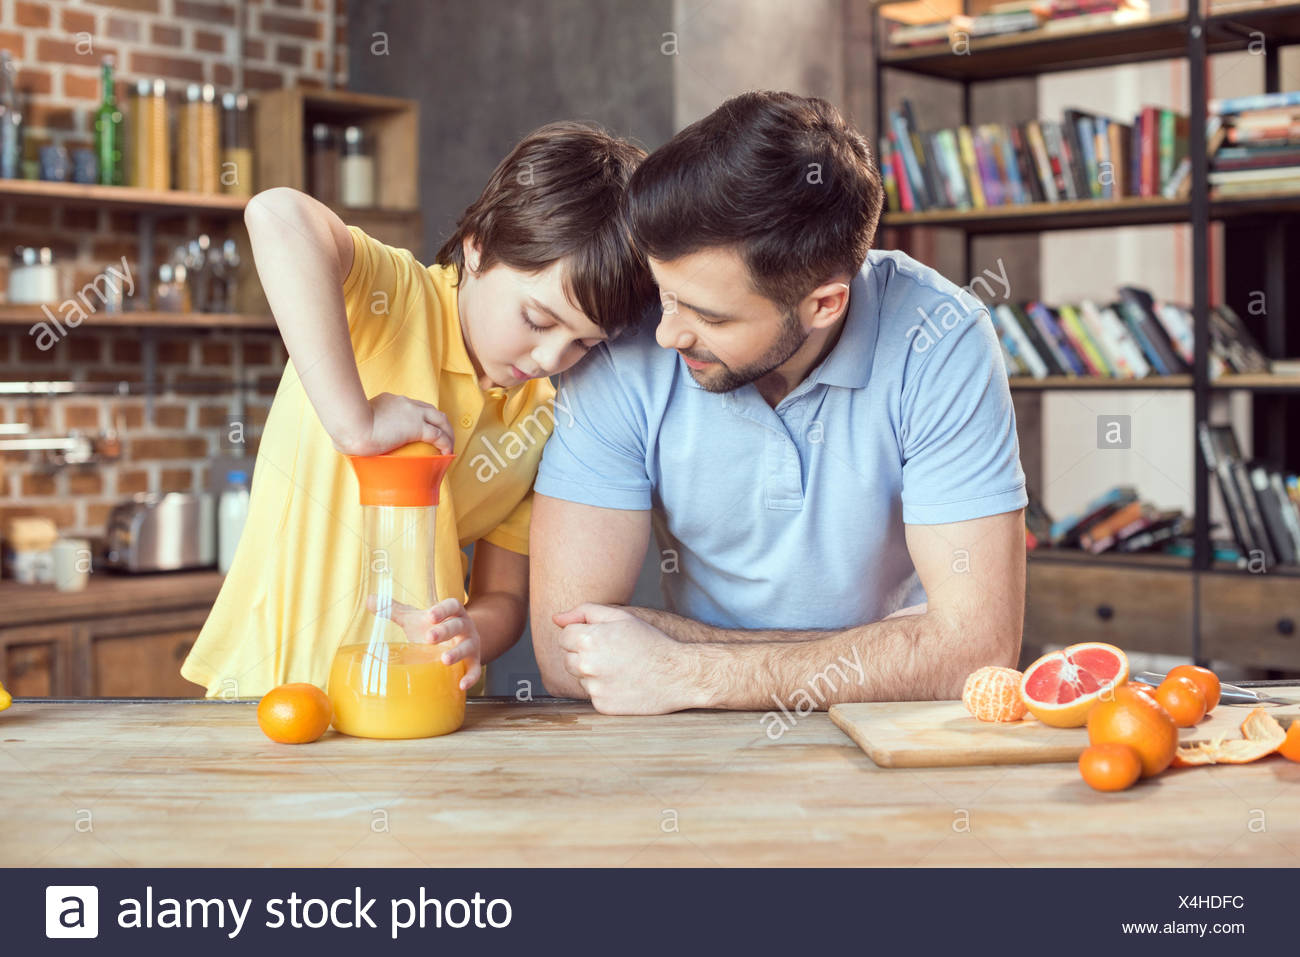 Father and son squeezing fresh orange juice at kitchen table - Stock Image